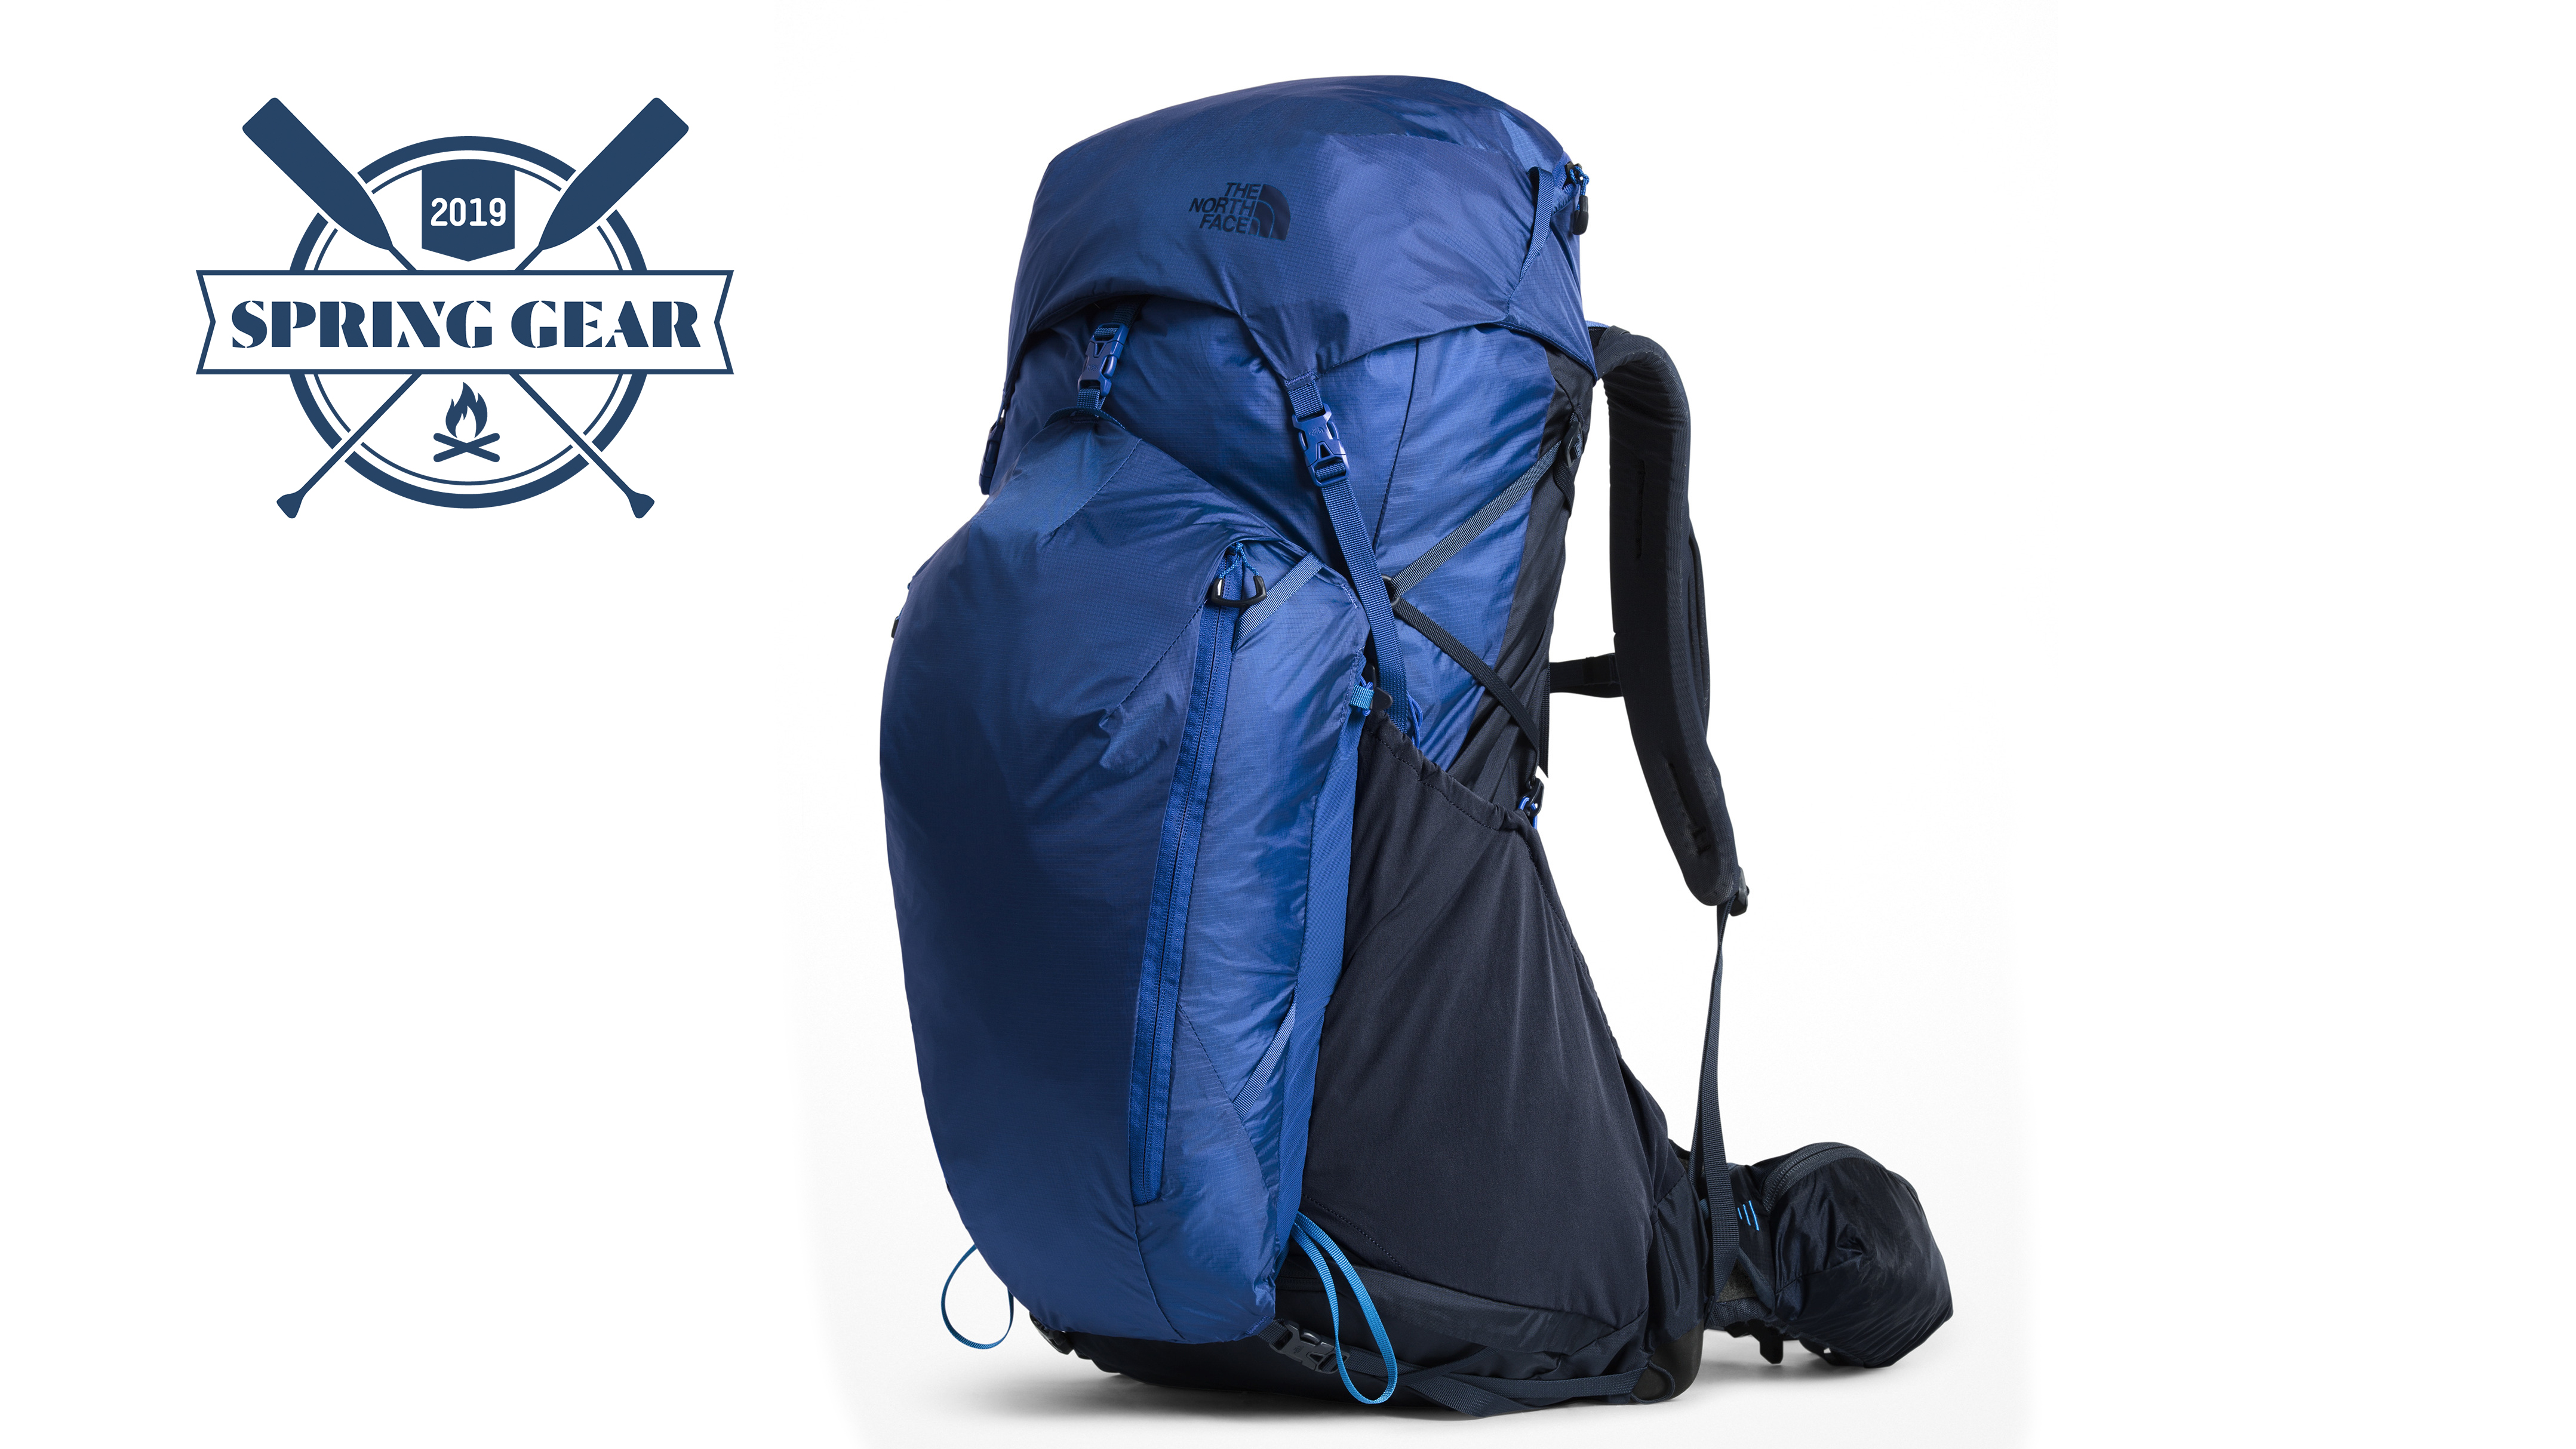 Spring Gear 2019: The Complete Guide to Backpacking